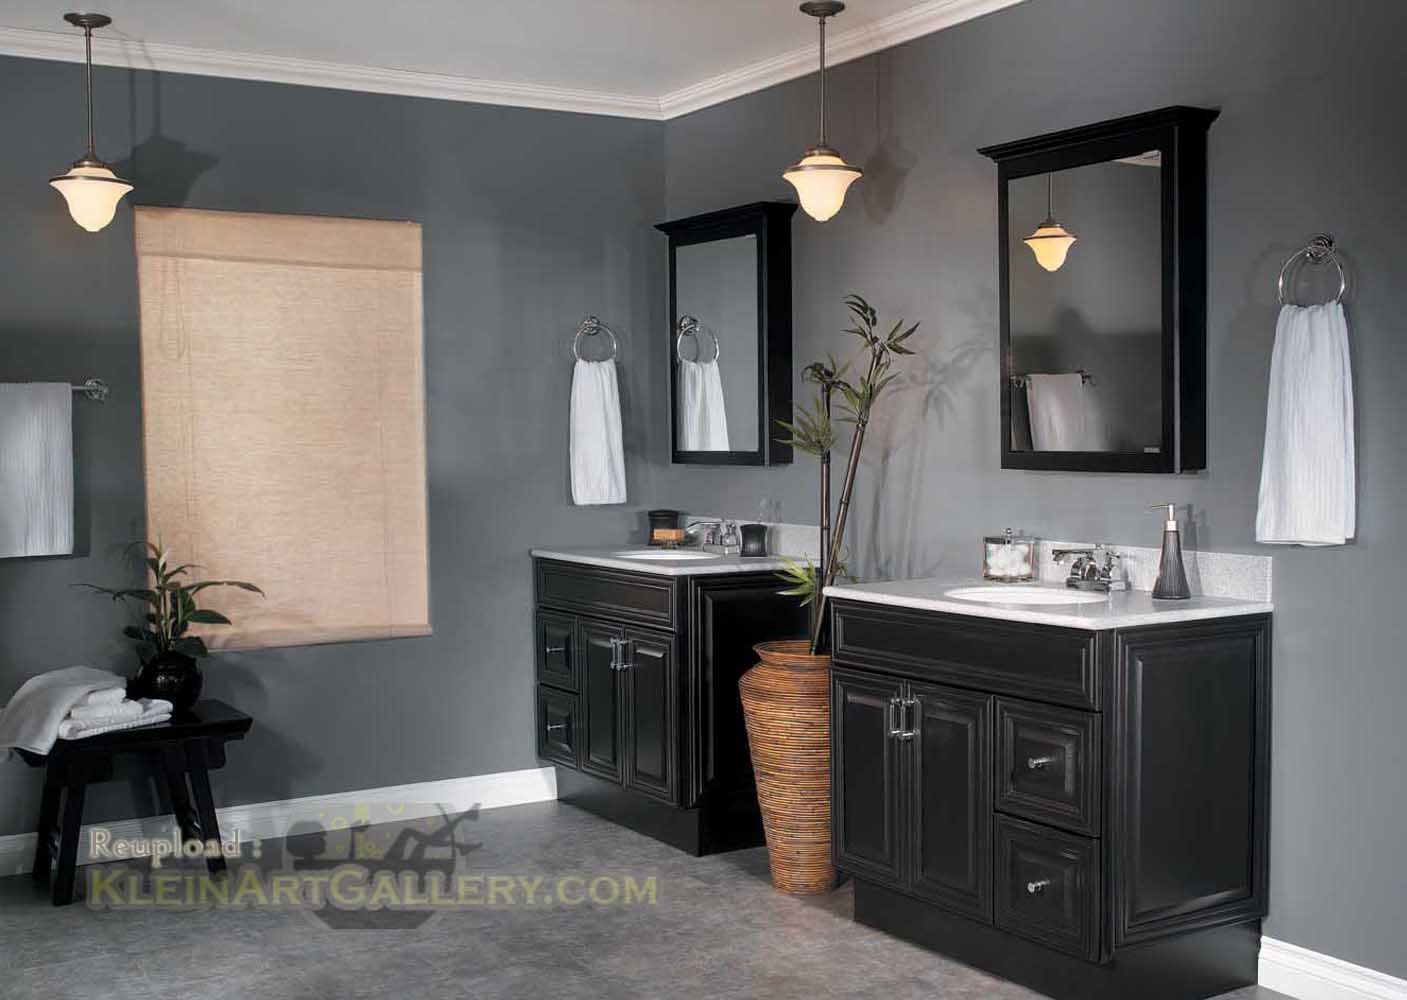 Bathroom Color Ideas With Dark Cabinets | Bathroom | Pinterest ...